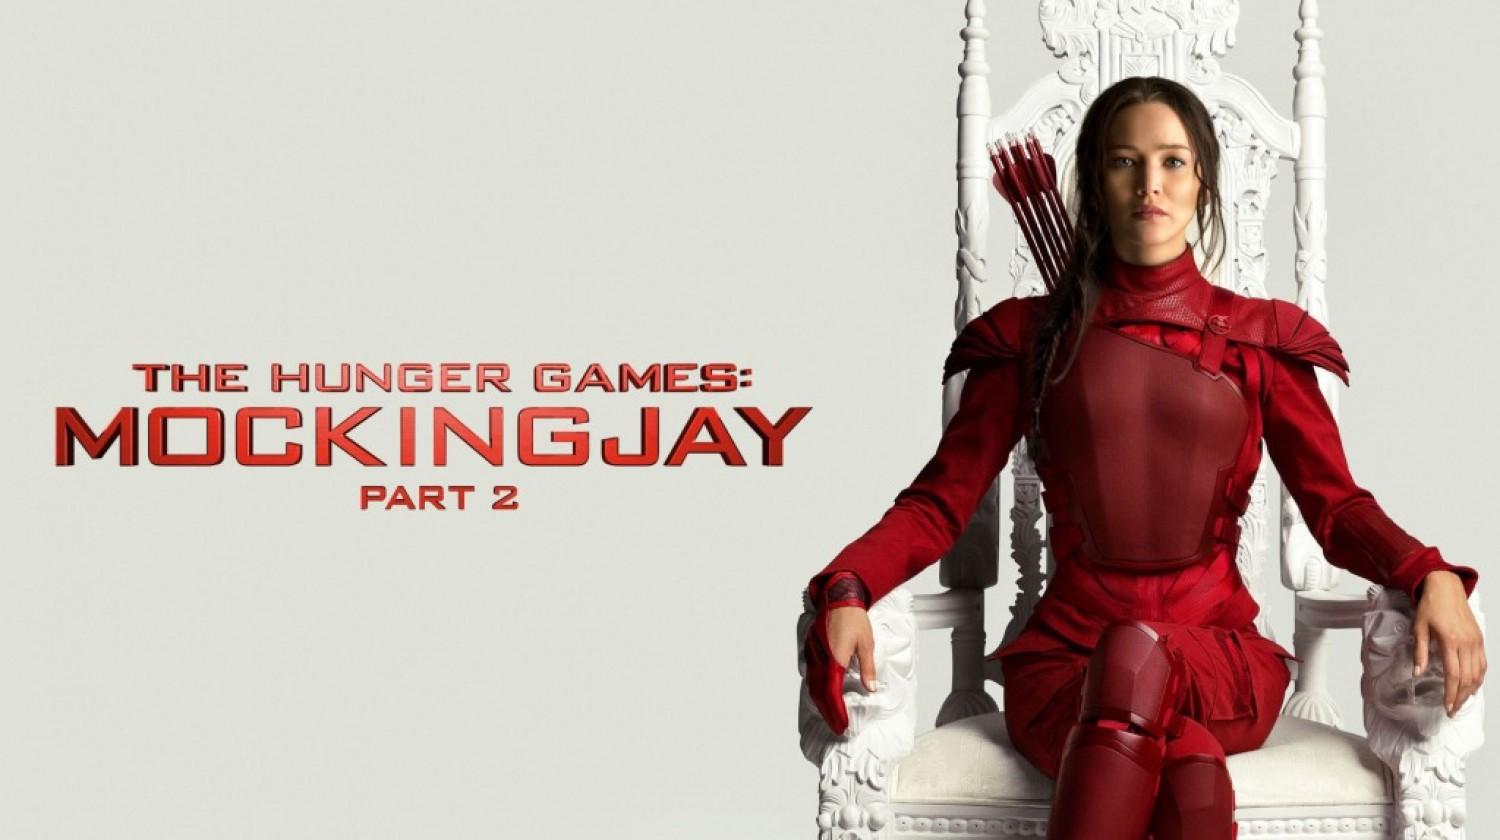 The Hunger Games: Mockingjay Part 2 (2015) Directed By Francis Lawrence - Movie Review